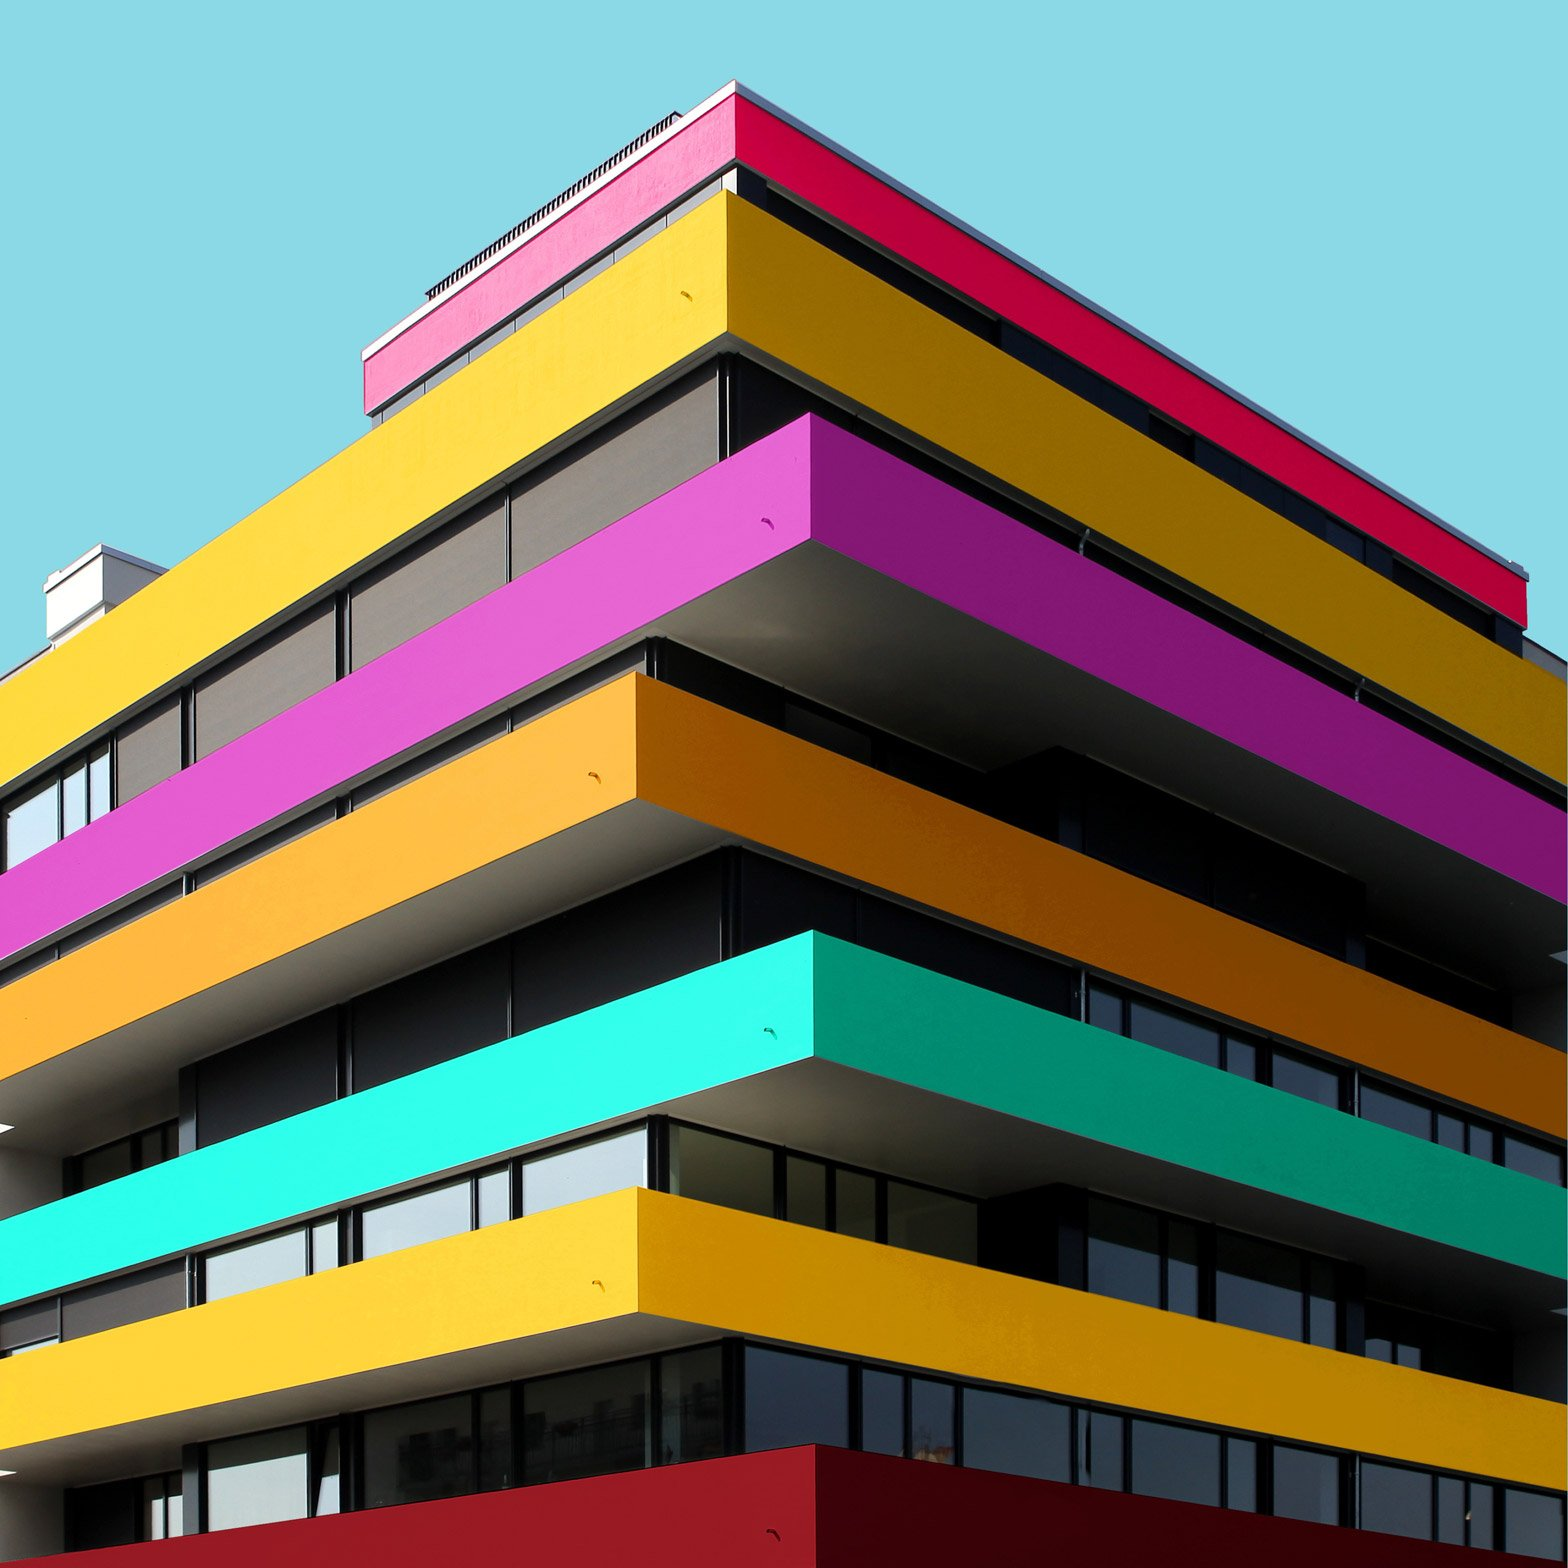 color in architecture essay